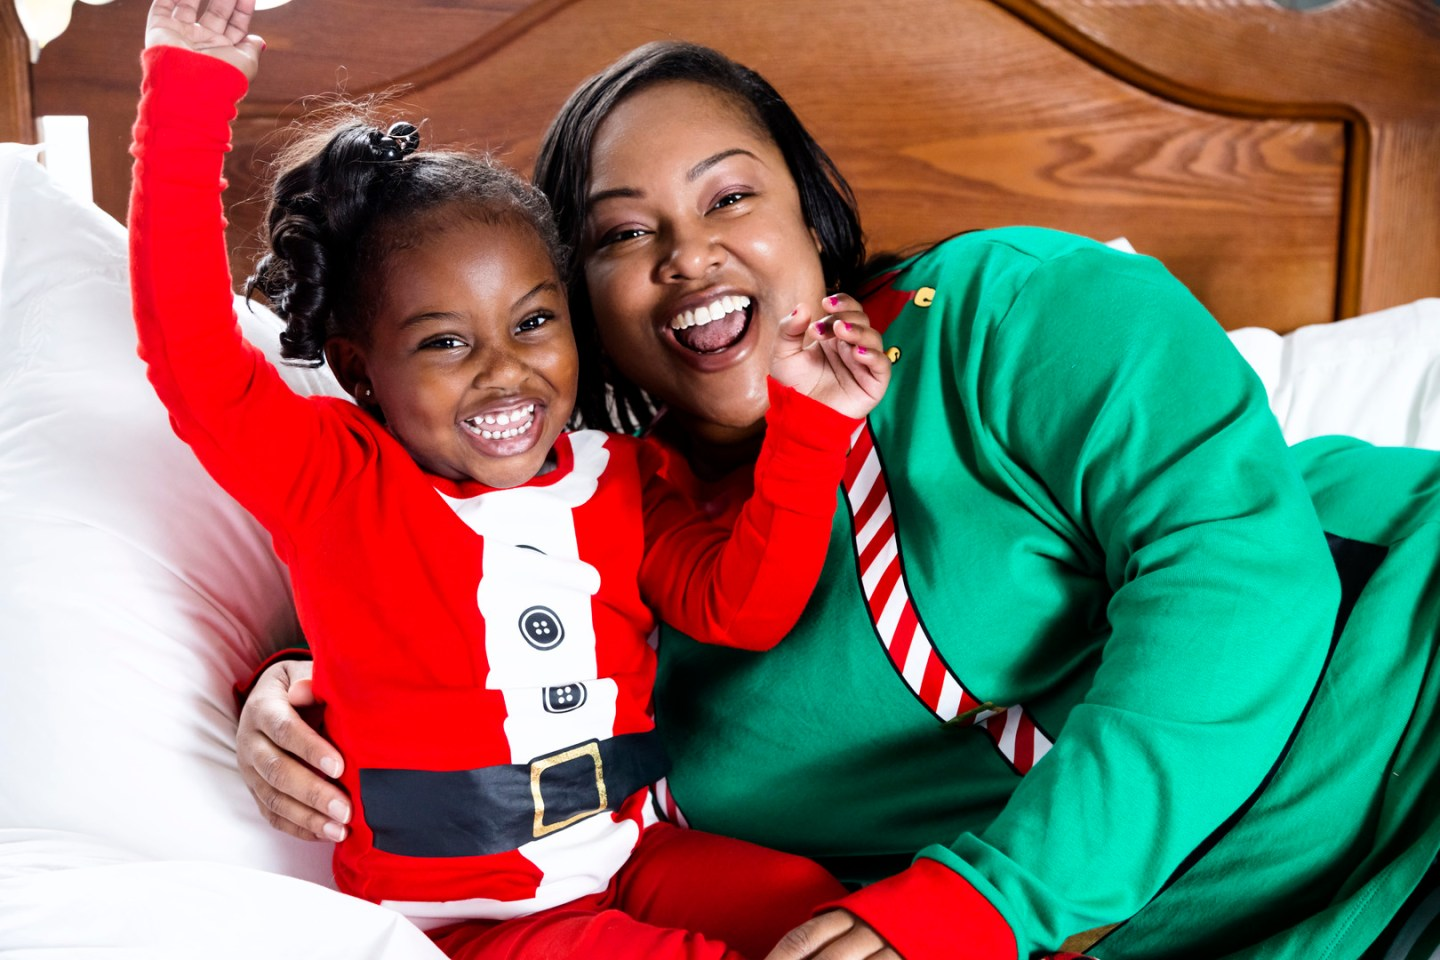 nbafp0q3nypu6cw60b06_big Mommy & Me Christmas PJ Session in Greensboro, NC